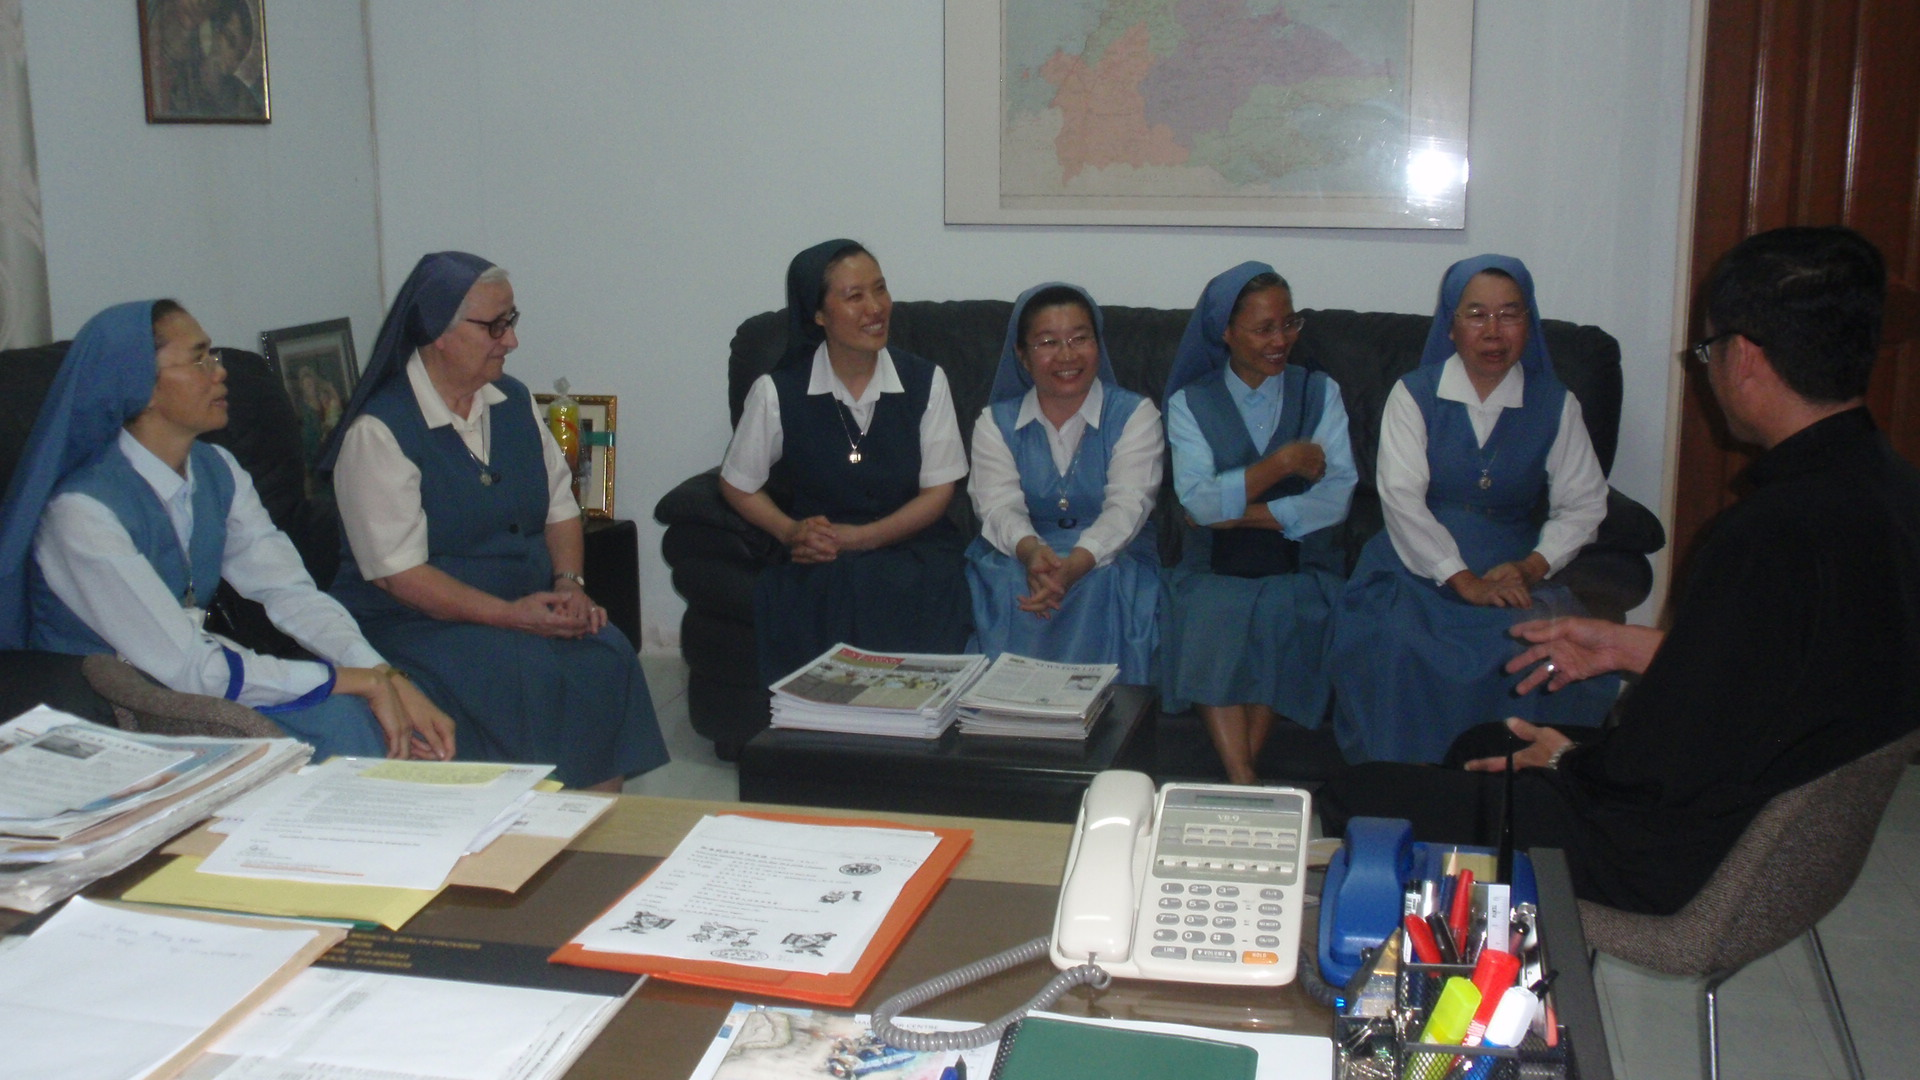 The local sisters accompany Sr Samuela (2nd L) and Sr Lucia (4th from R) on their courtesy call on Abp Wong at his office Feb 19.